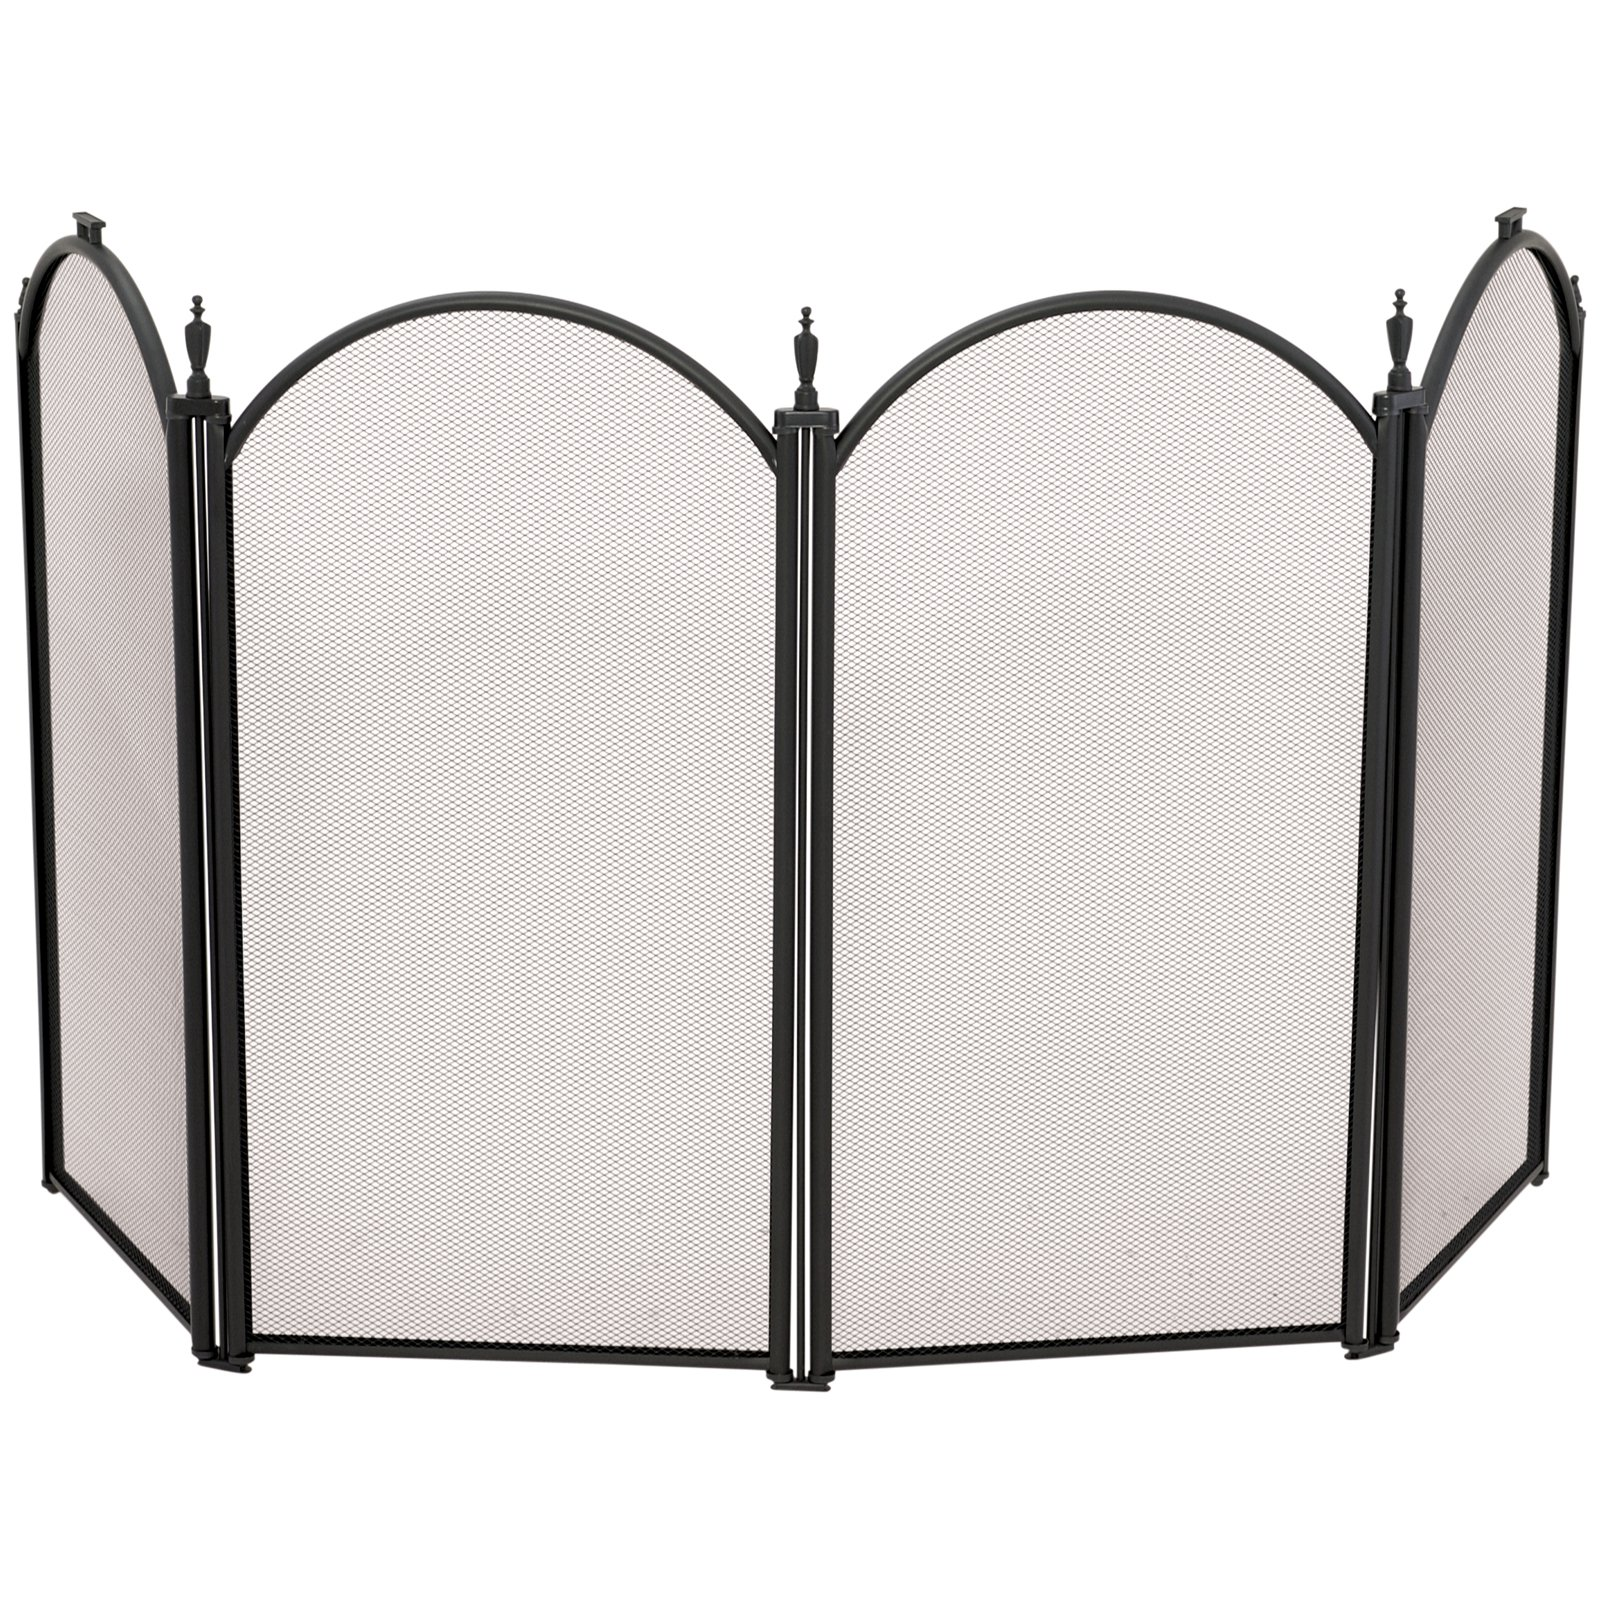 Uniflame 4 Panel Mini Fireplace Screen